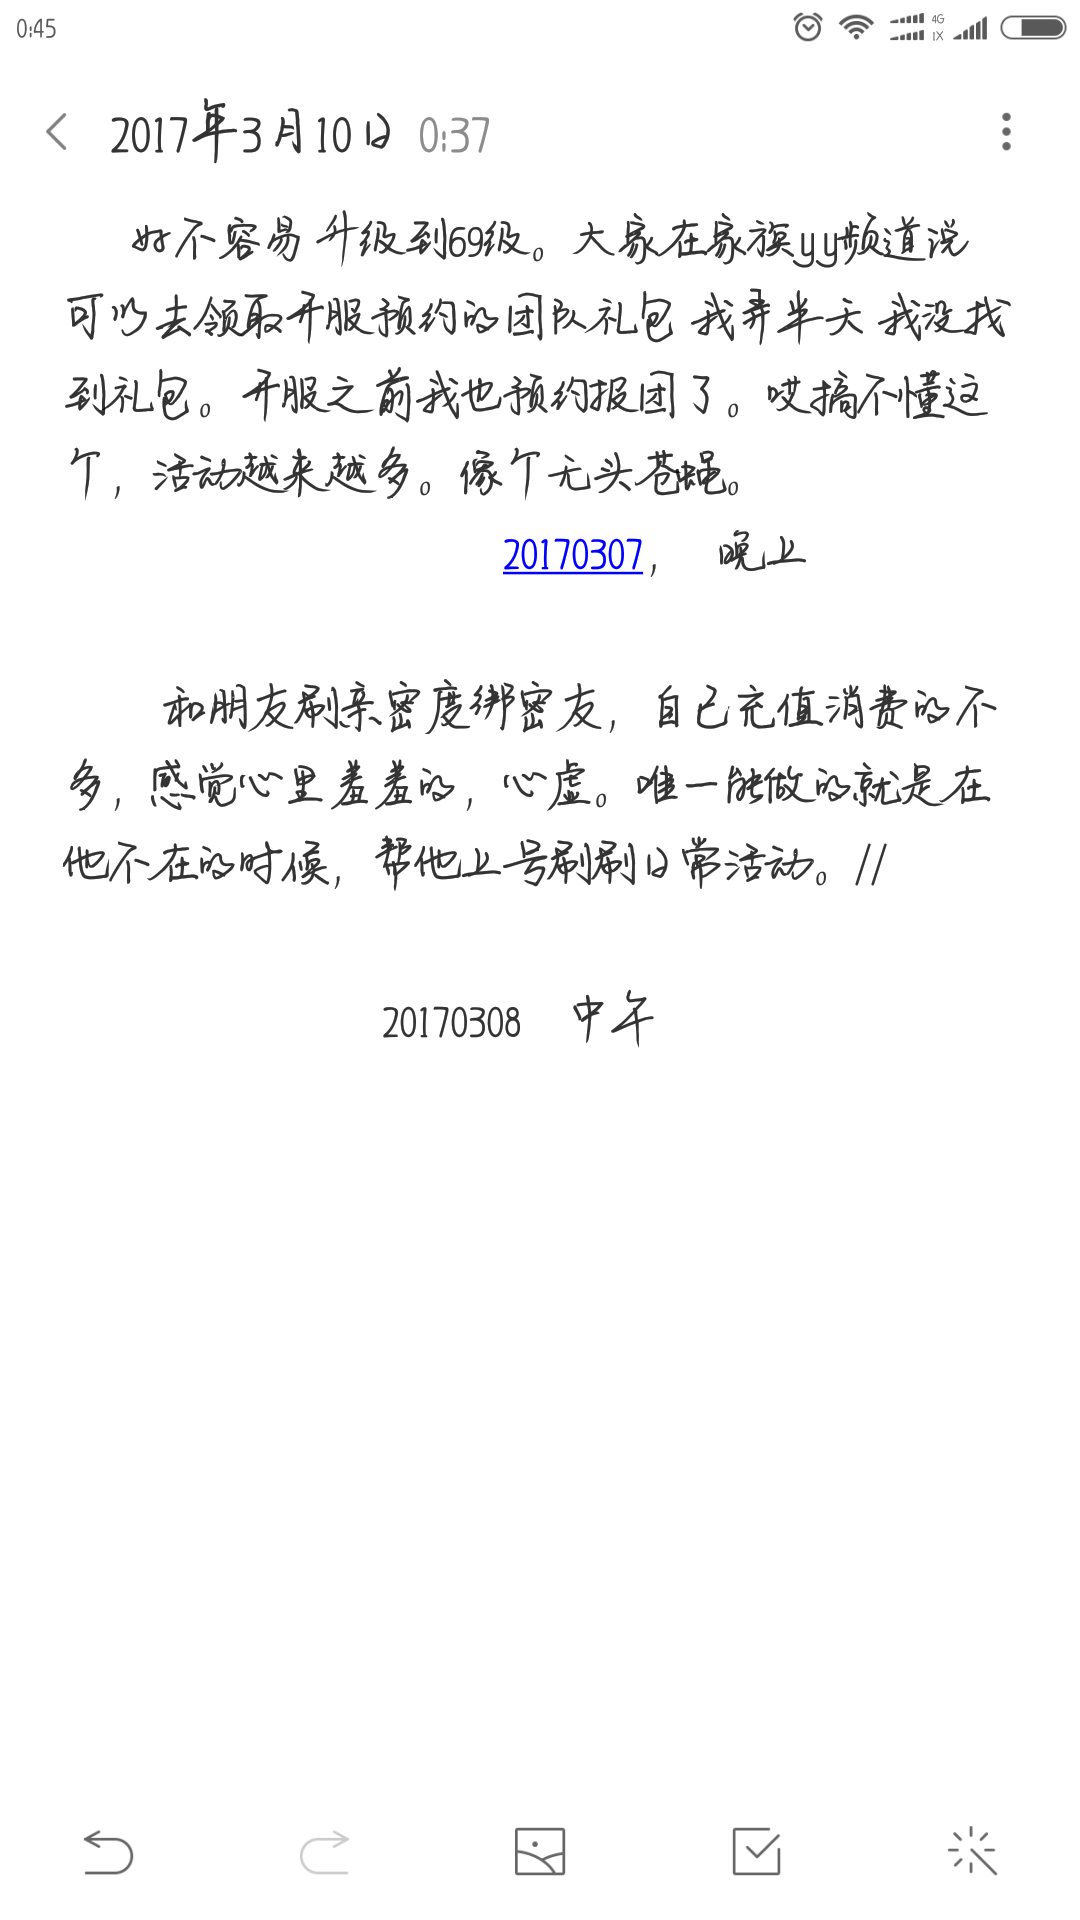 Screenshot_2017-03-10-00-45-41-547_com.miui.notes.png